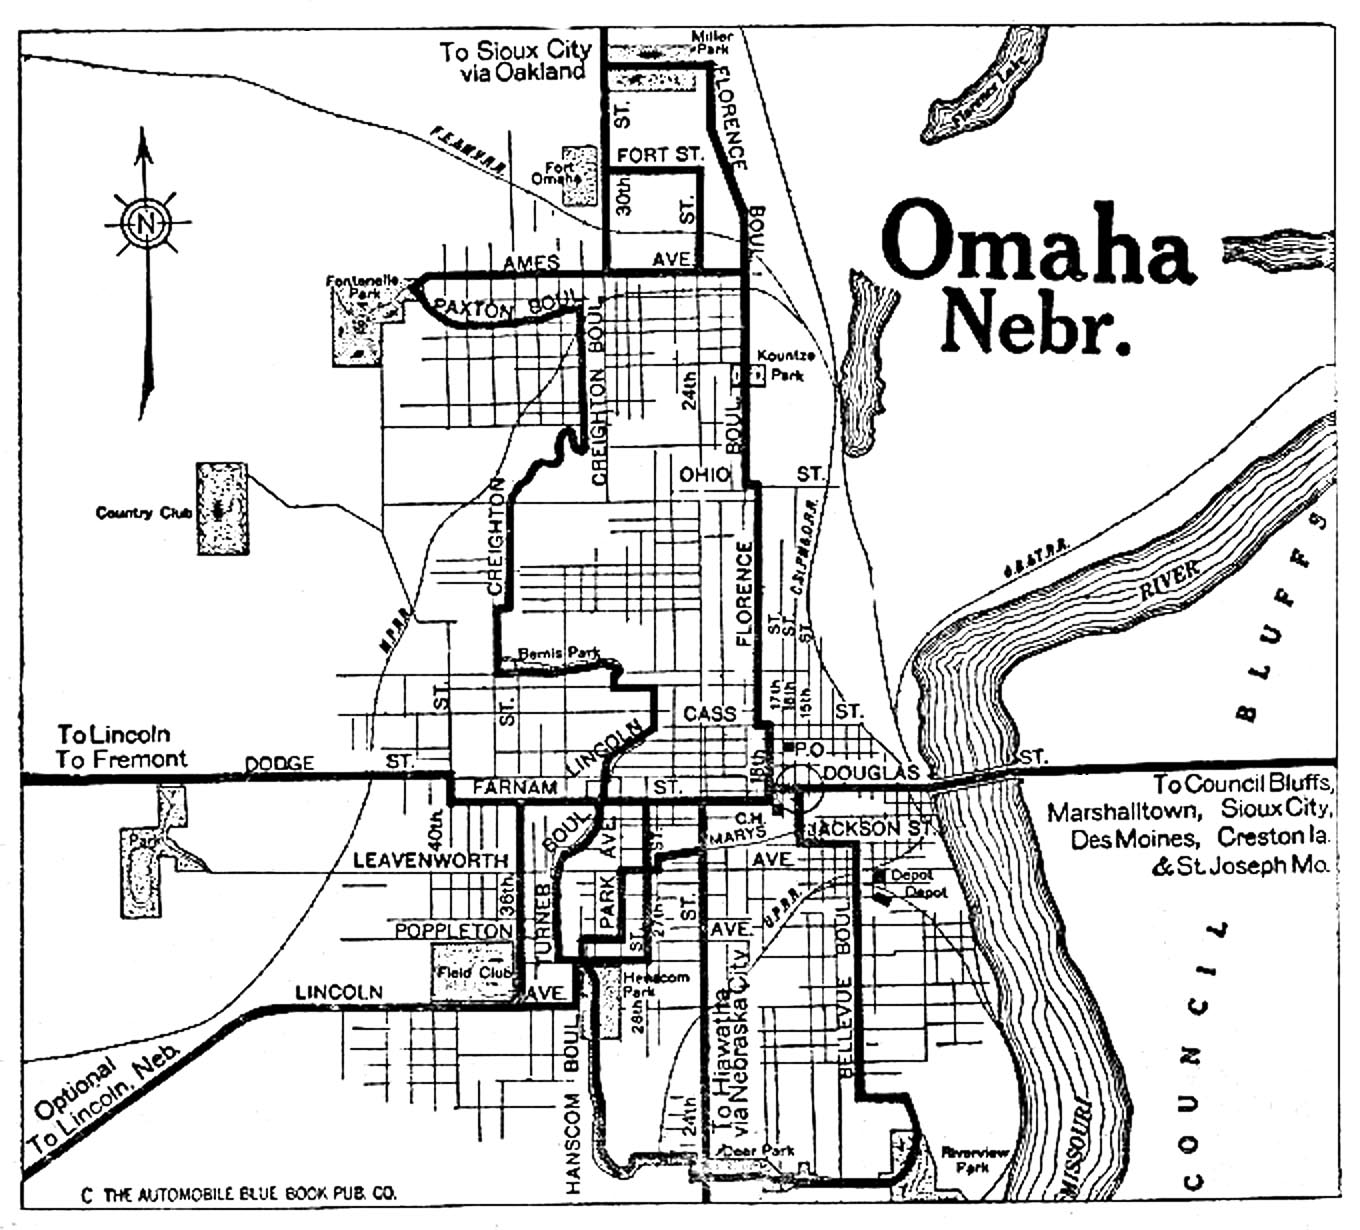 Nebraska City Maps At AmericanRoadscom - City map of nebraska